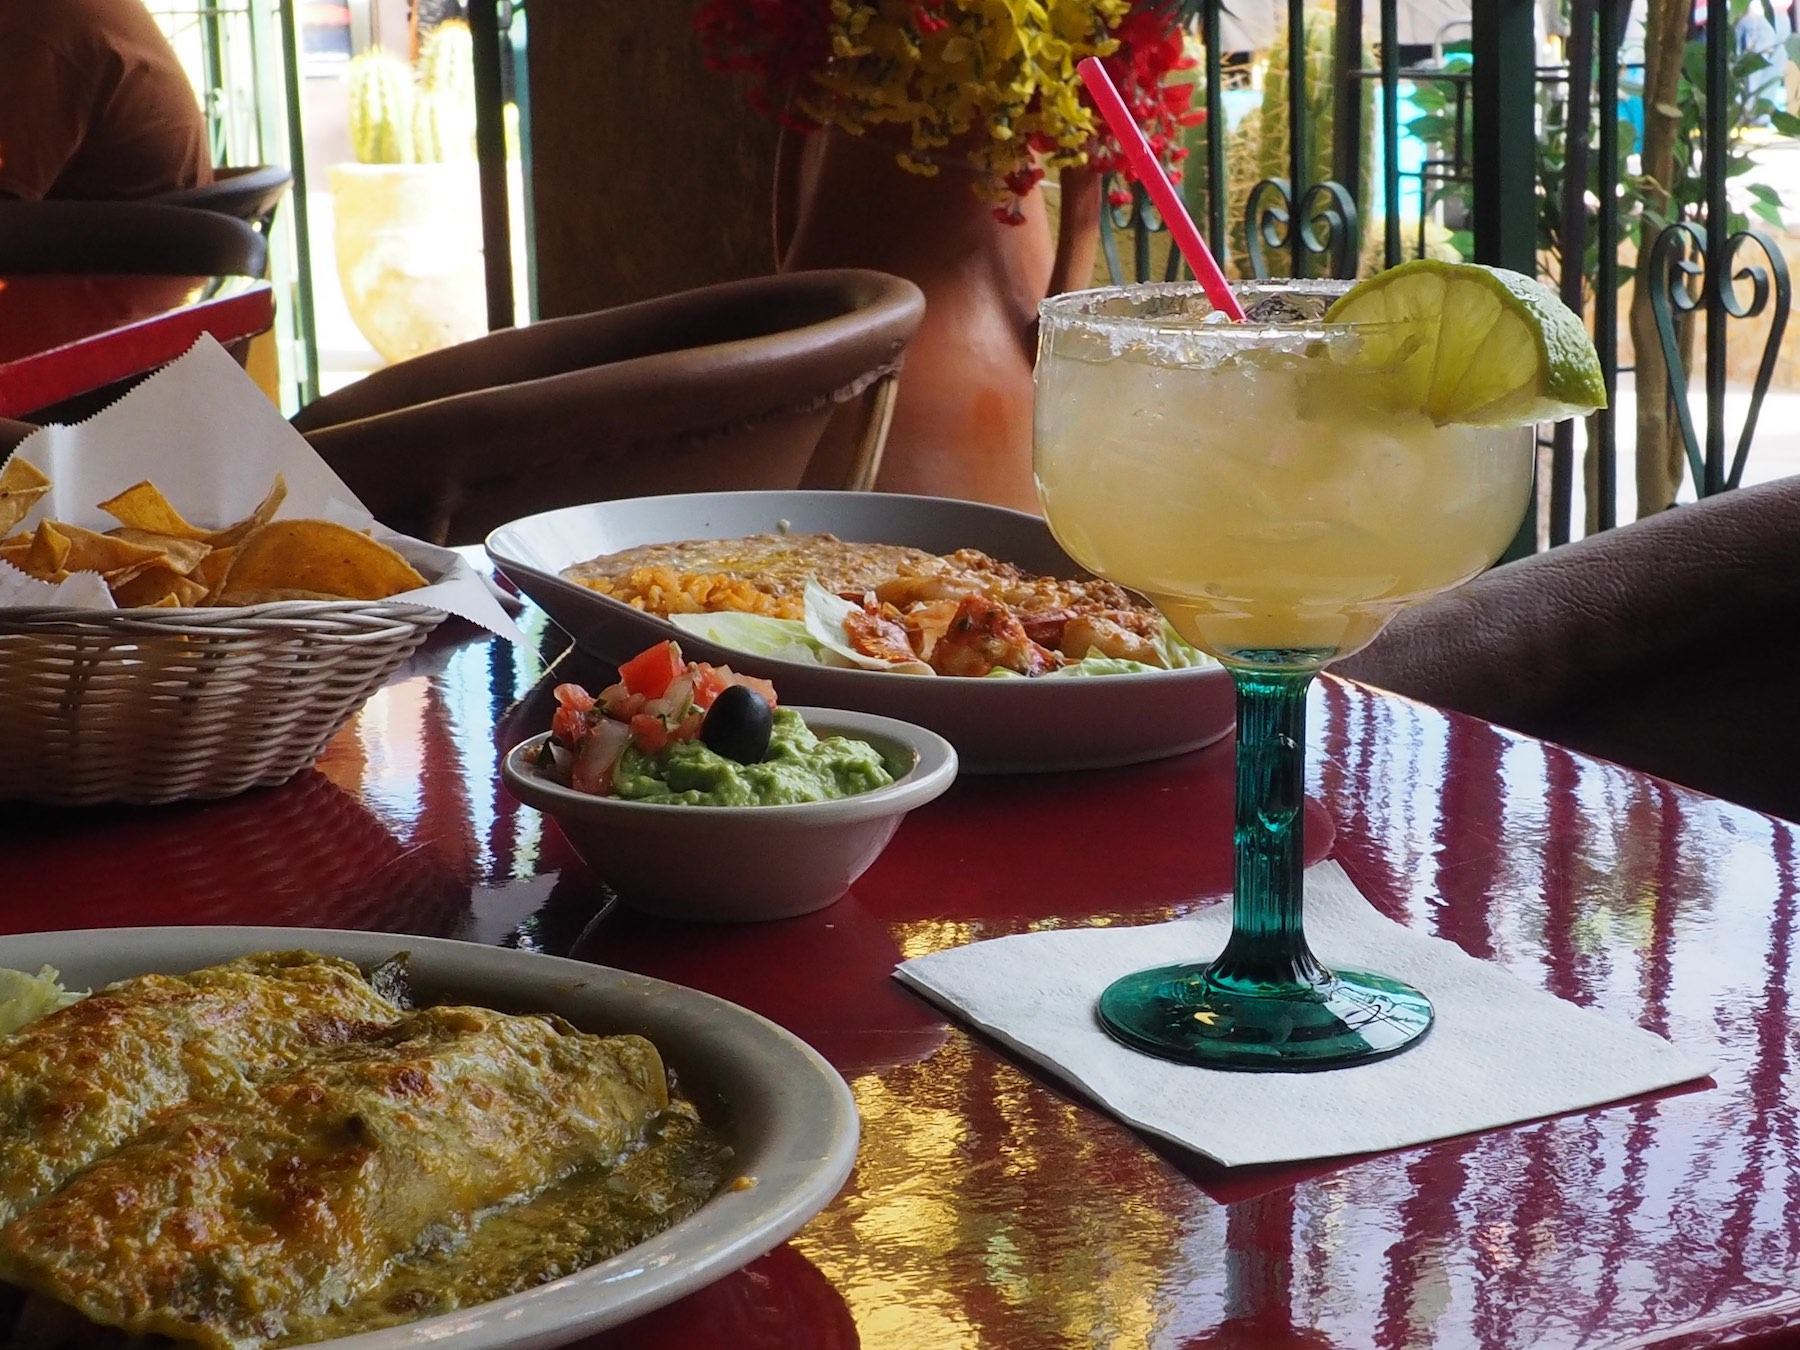 Margarita and Mexican Food at Pablito's Restaurant